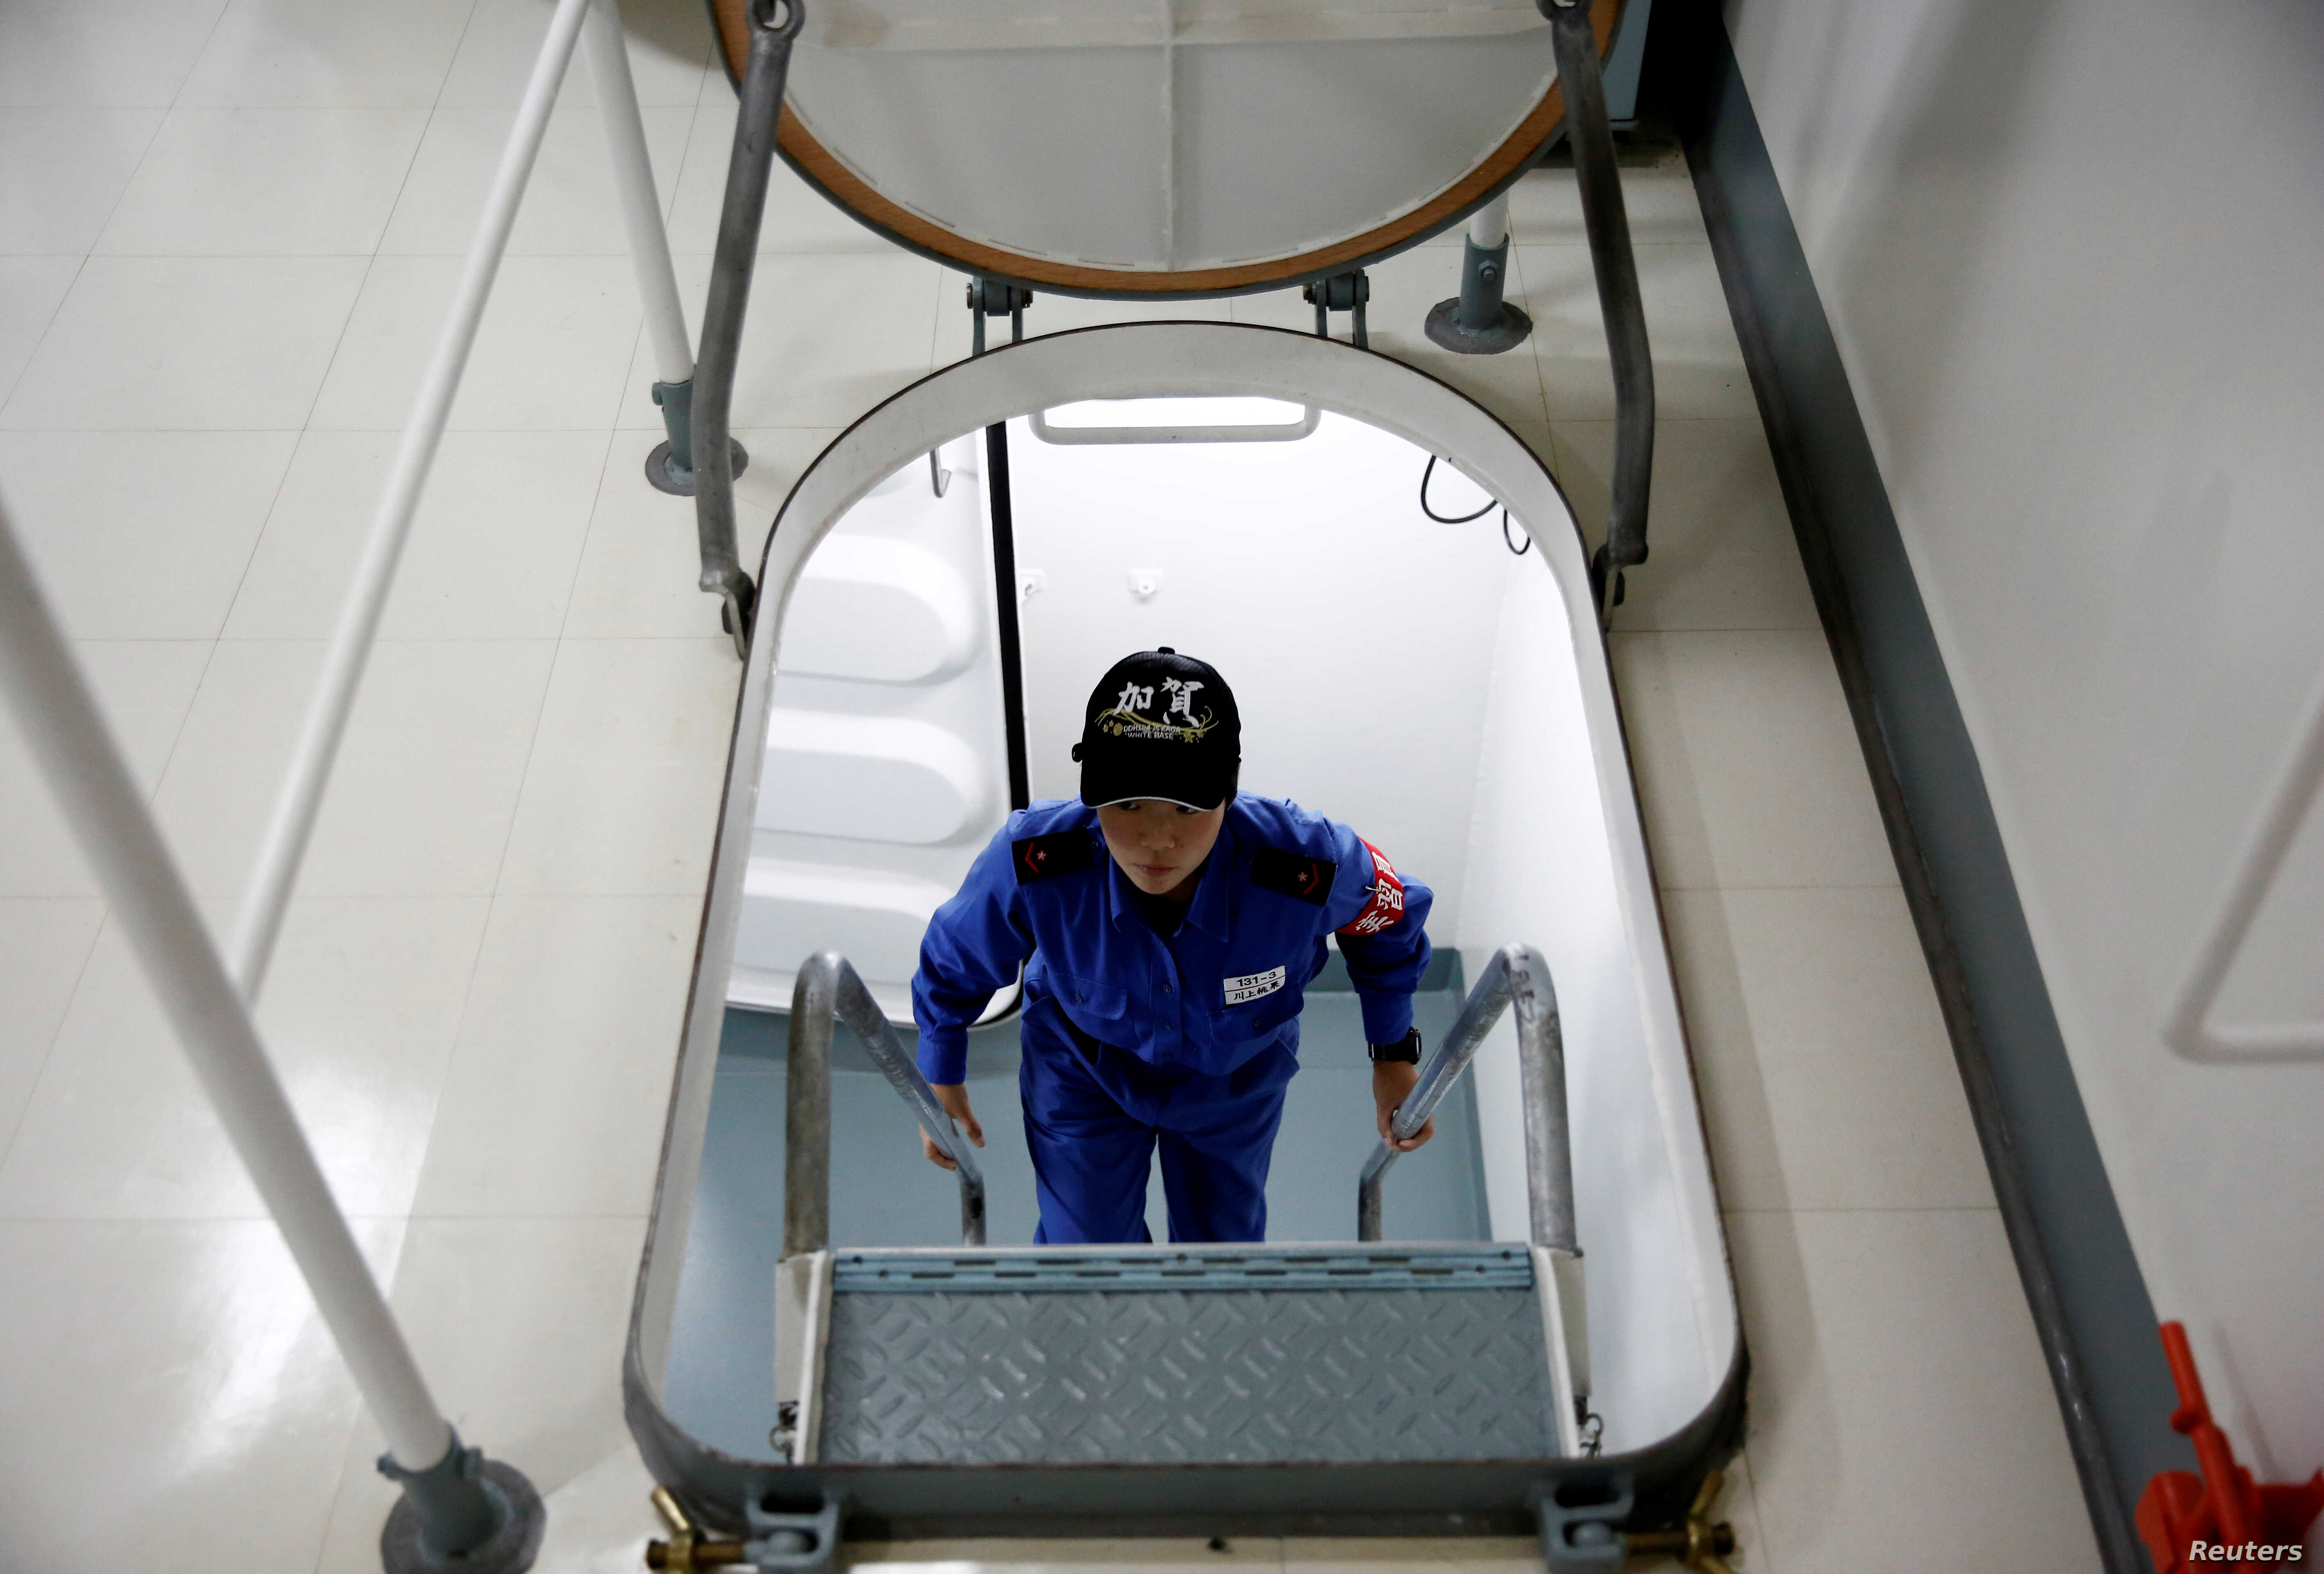 A female trainee climbs a ladder as she makes her way to a class aboard the Japanese helicopter carrier Kaga in the Indian Ocean, Indonesia, Sept. 23, 2018.